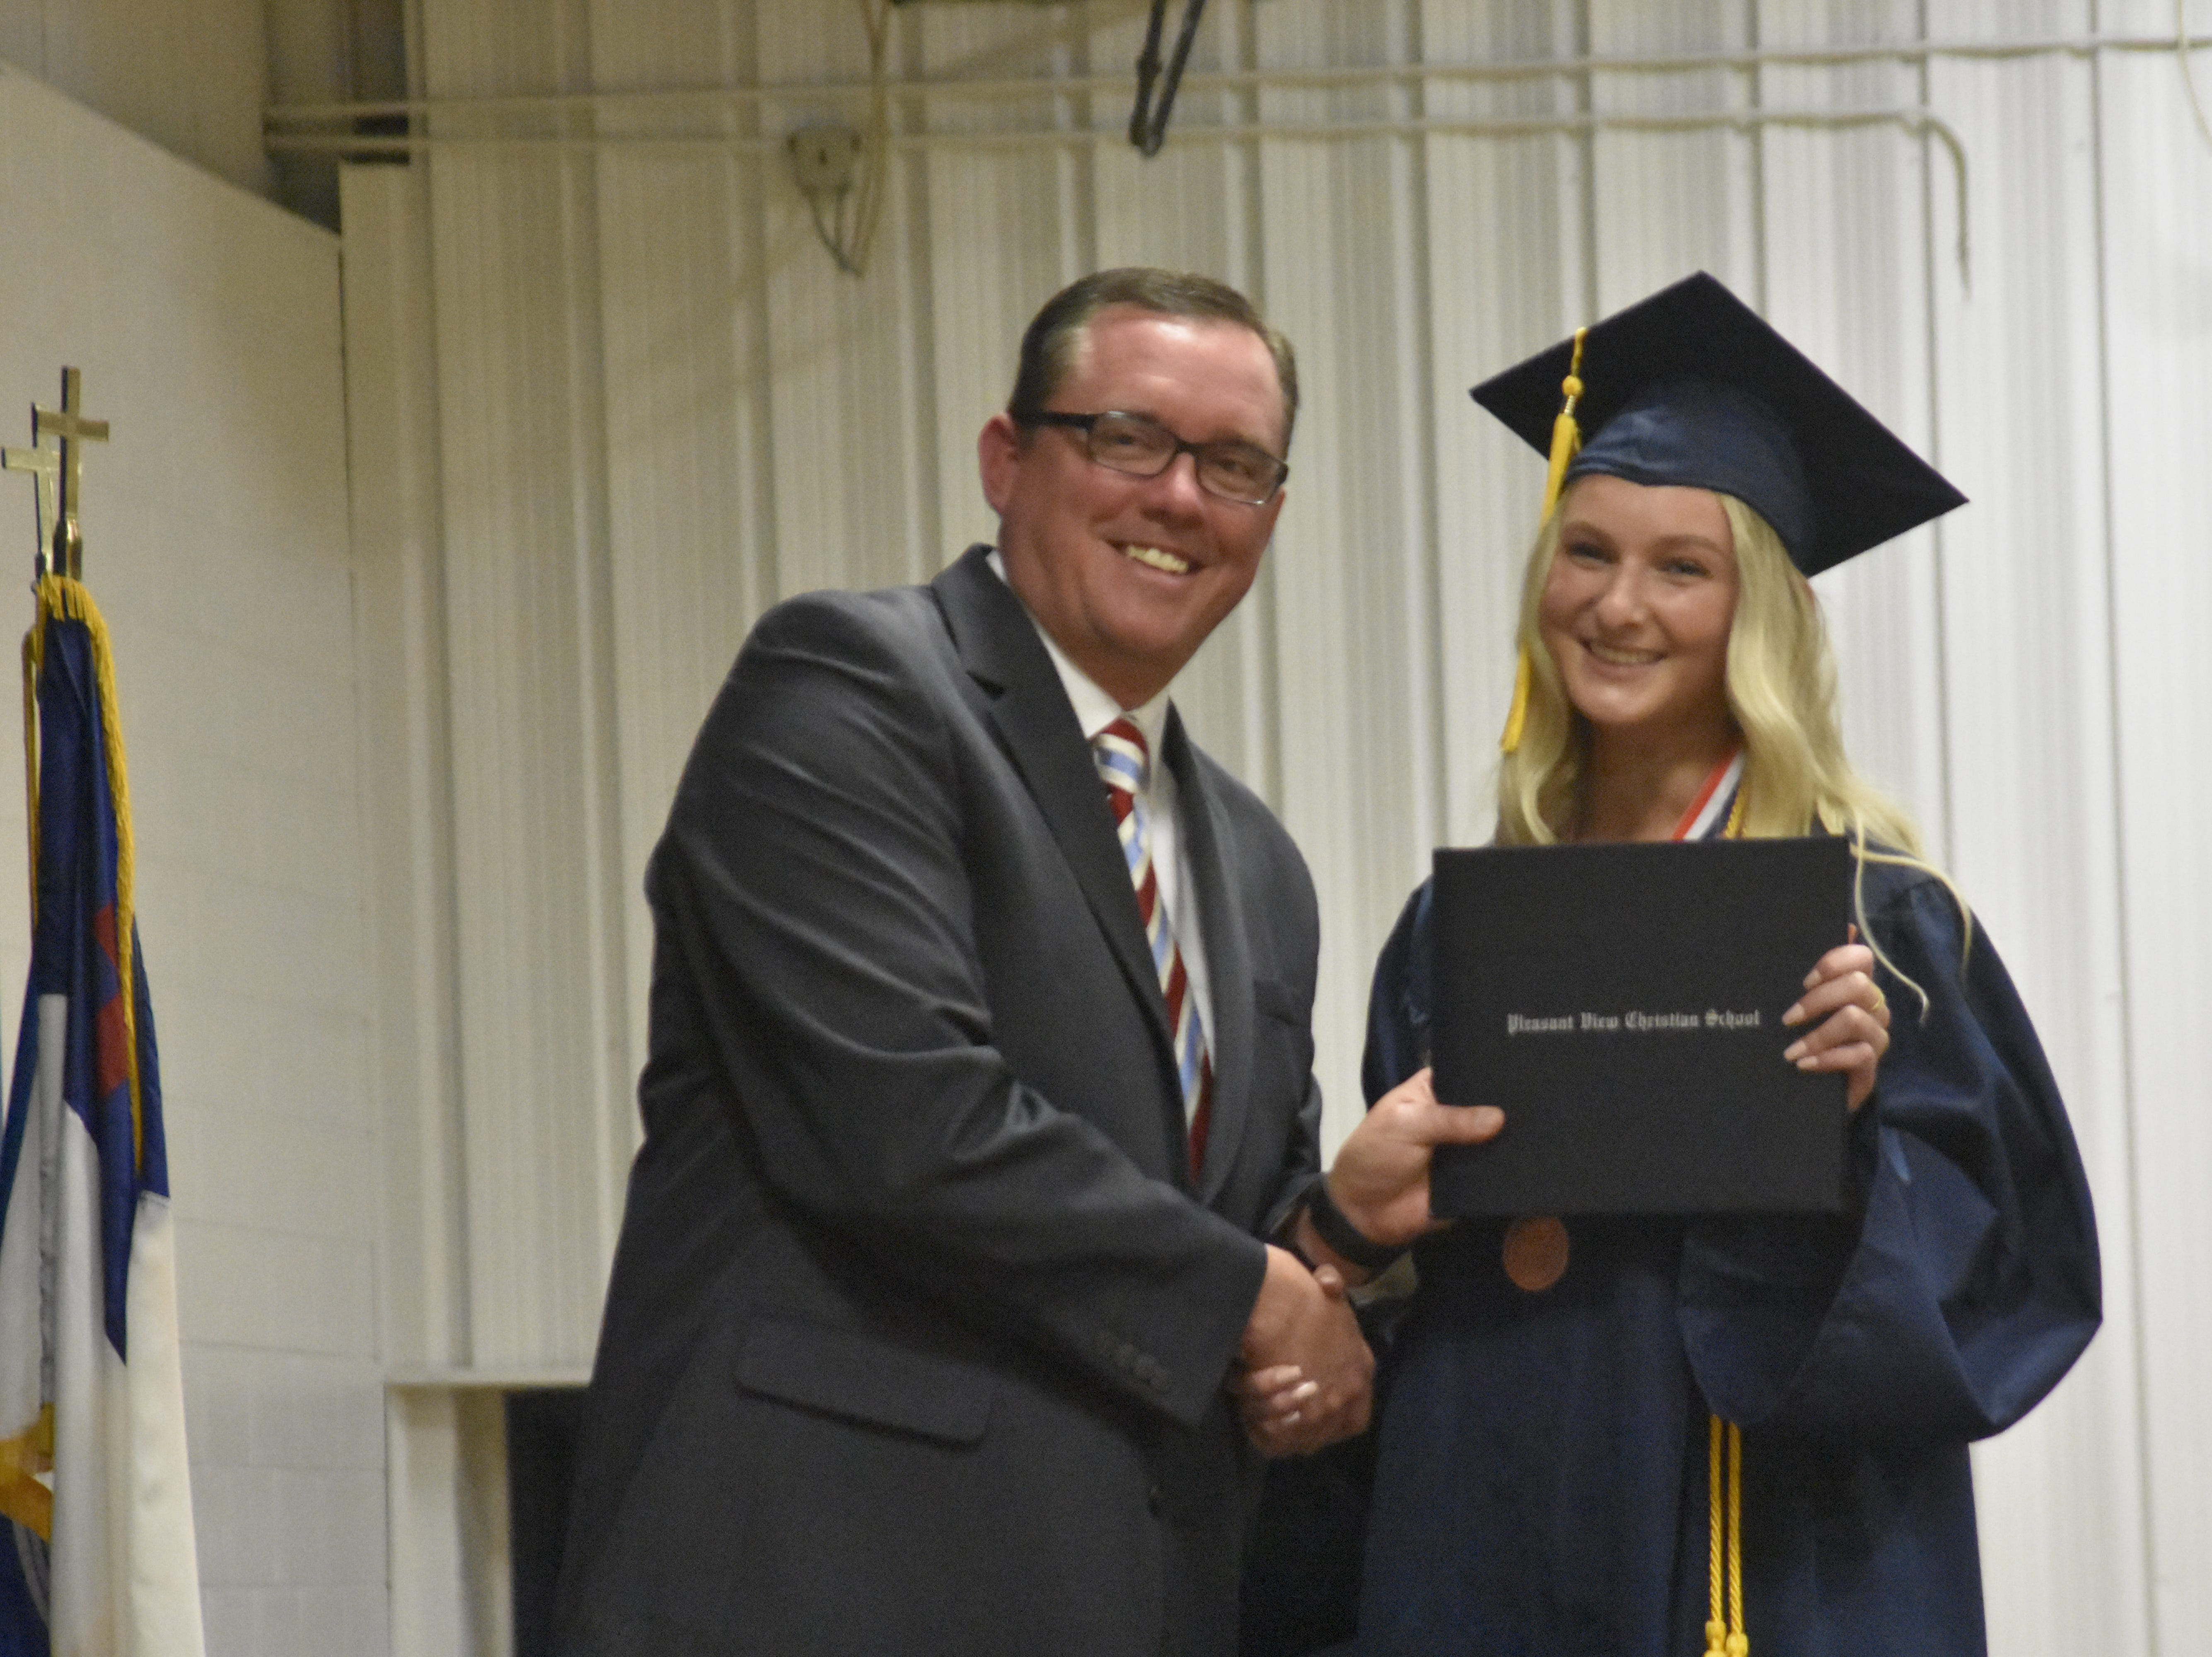 Pleasant View Christian School's class of 2019 graduated on Monday, May 13.